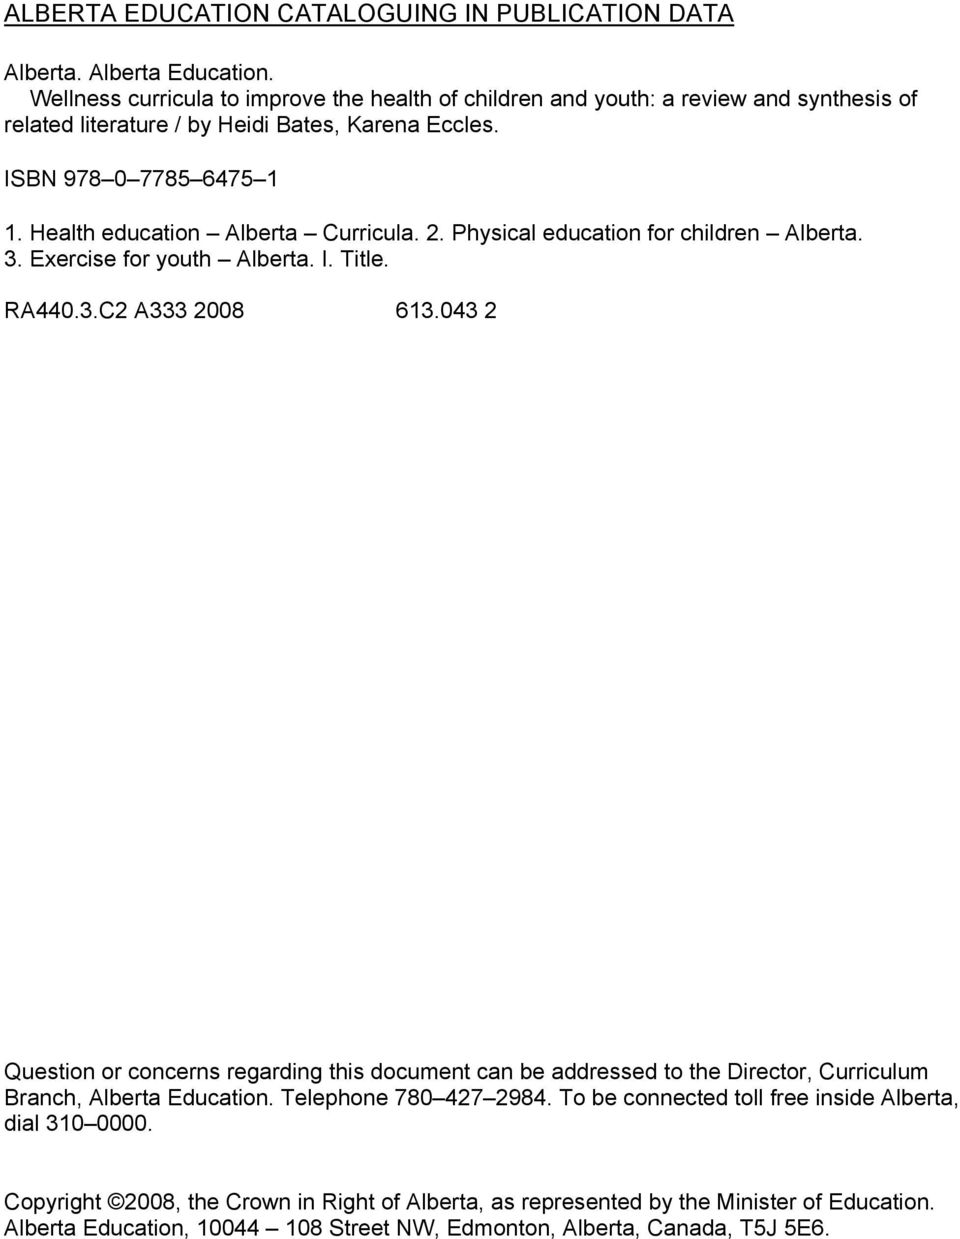 Health education Alberta Curricula. 2. Physical education for children Alberta. 3. Exercise for youth Alberta. I. Title. RA440.3.C2 A333 2008 613.